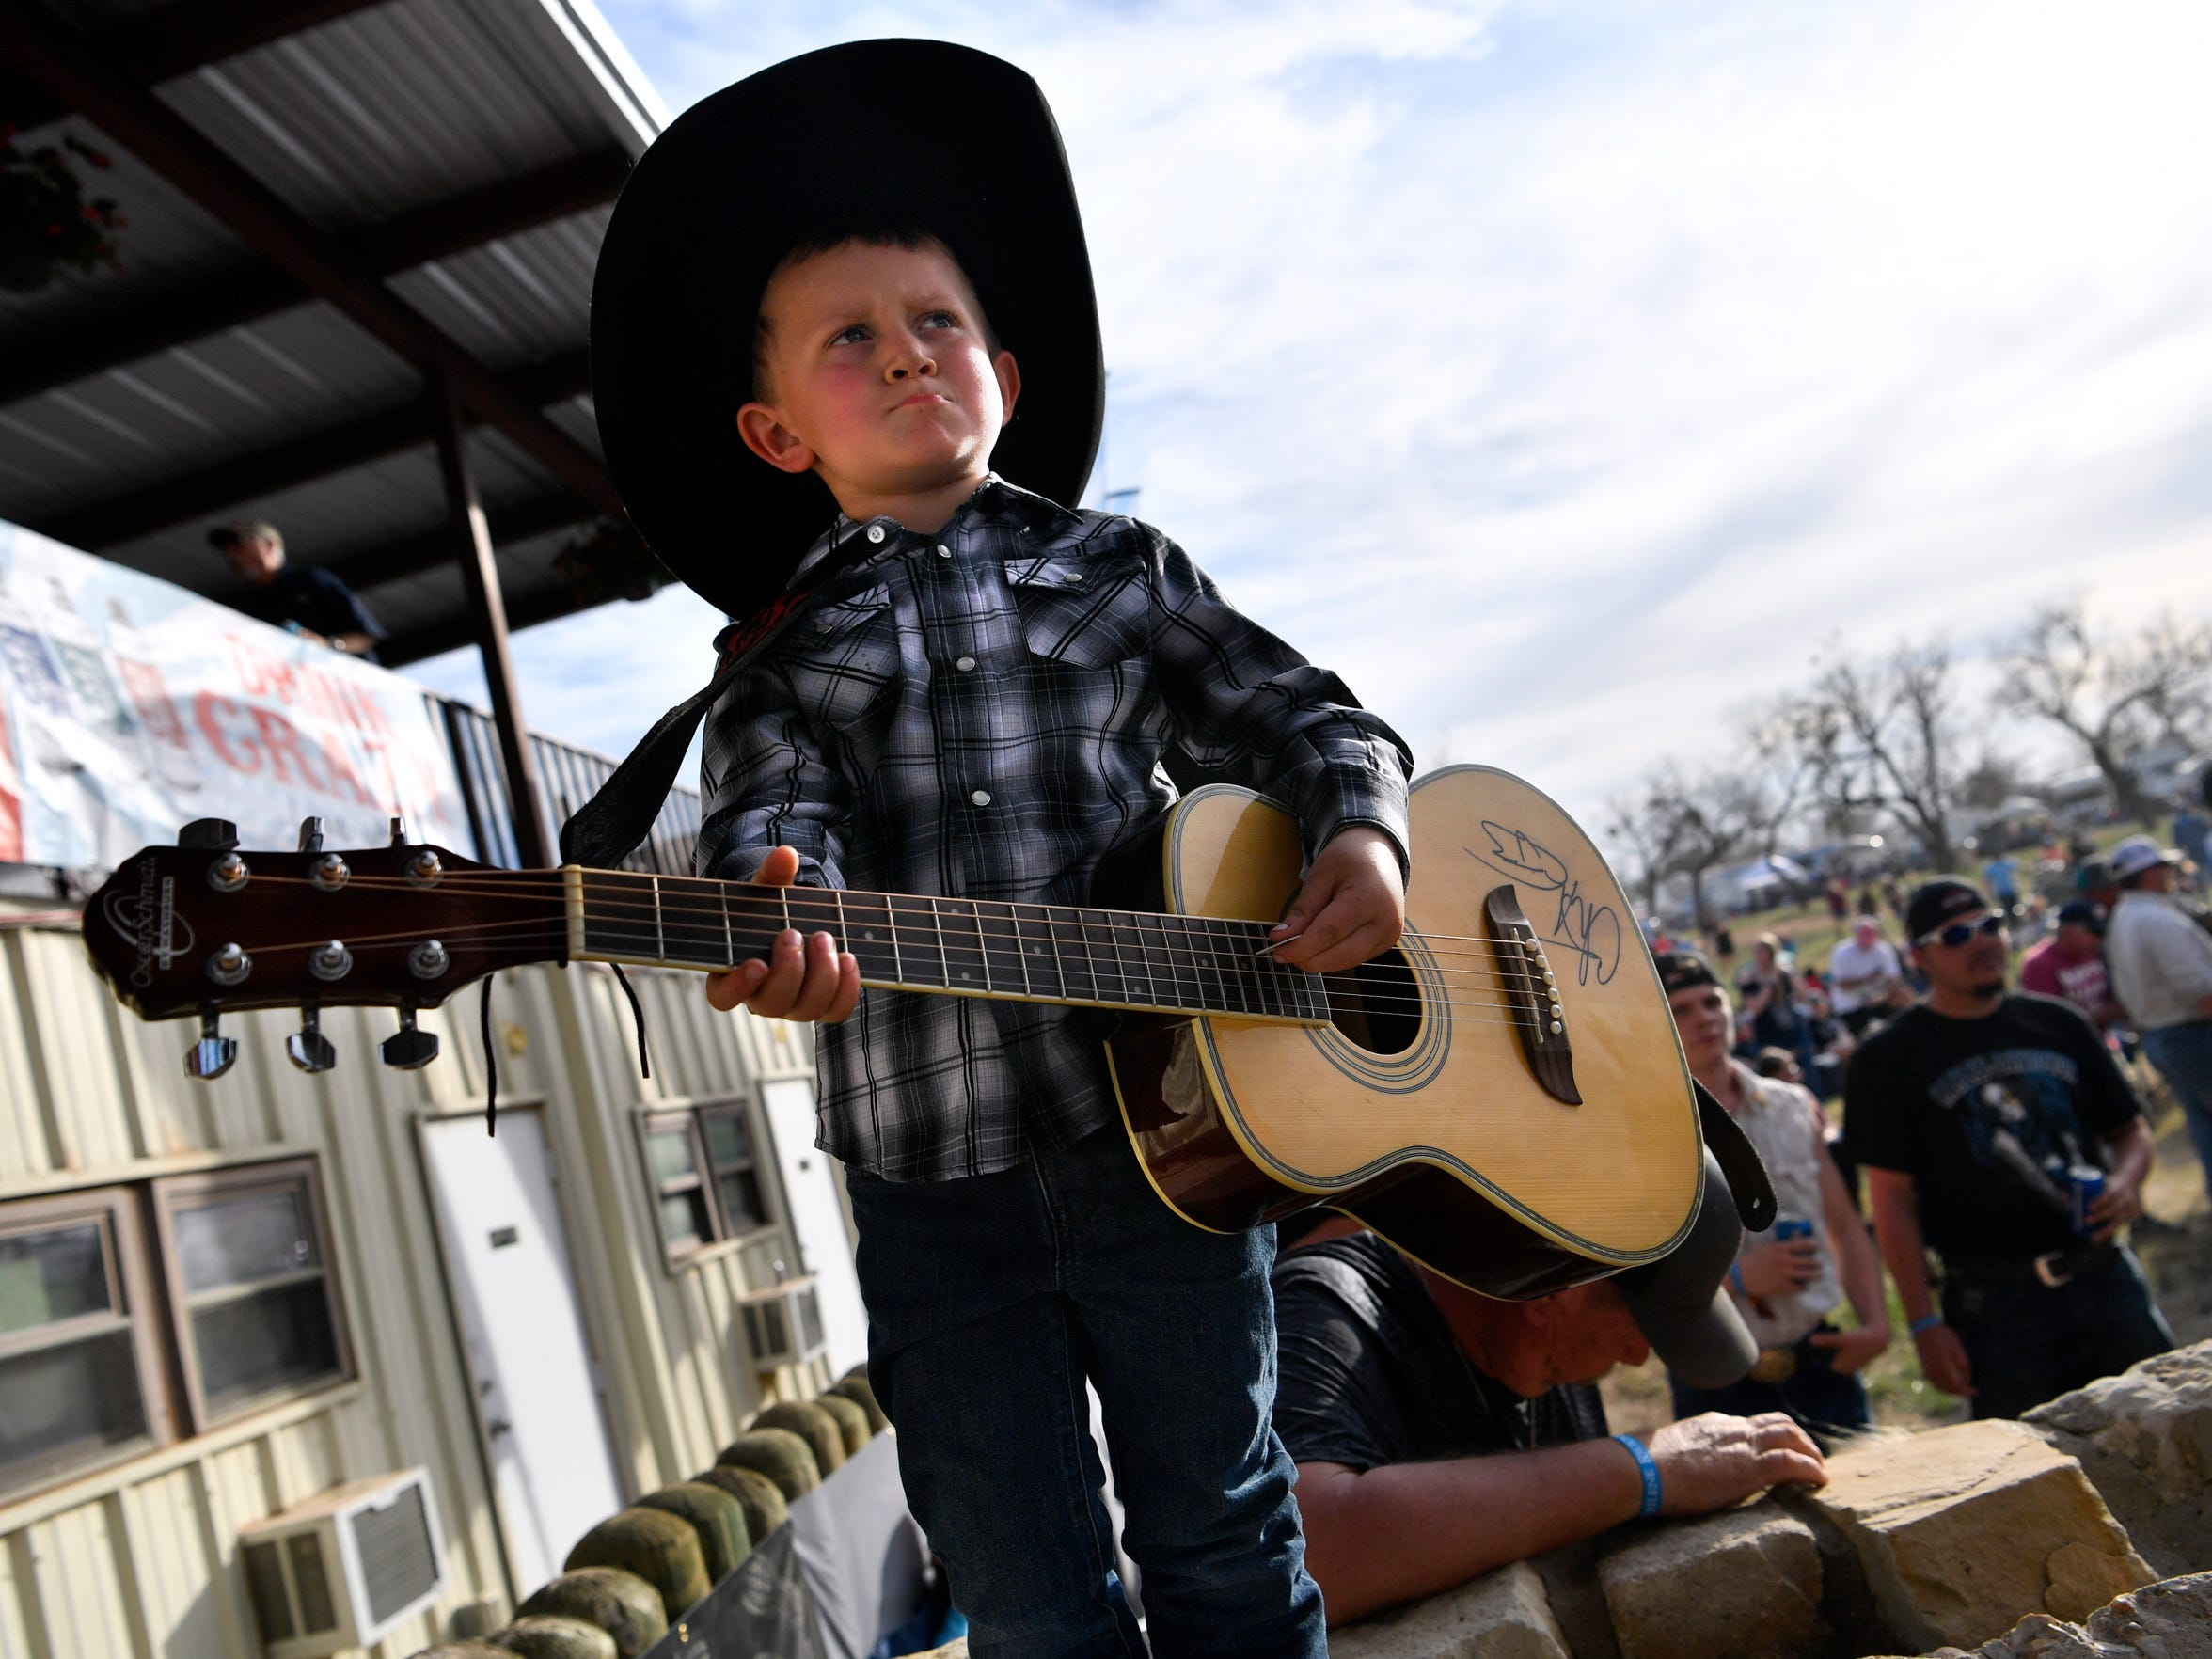 """Bubba Crabtree, then 5, """"performs"""" at the side of the stage in 2018. His guitar is autographed by many of the Outlaws & Legends artists."""